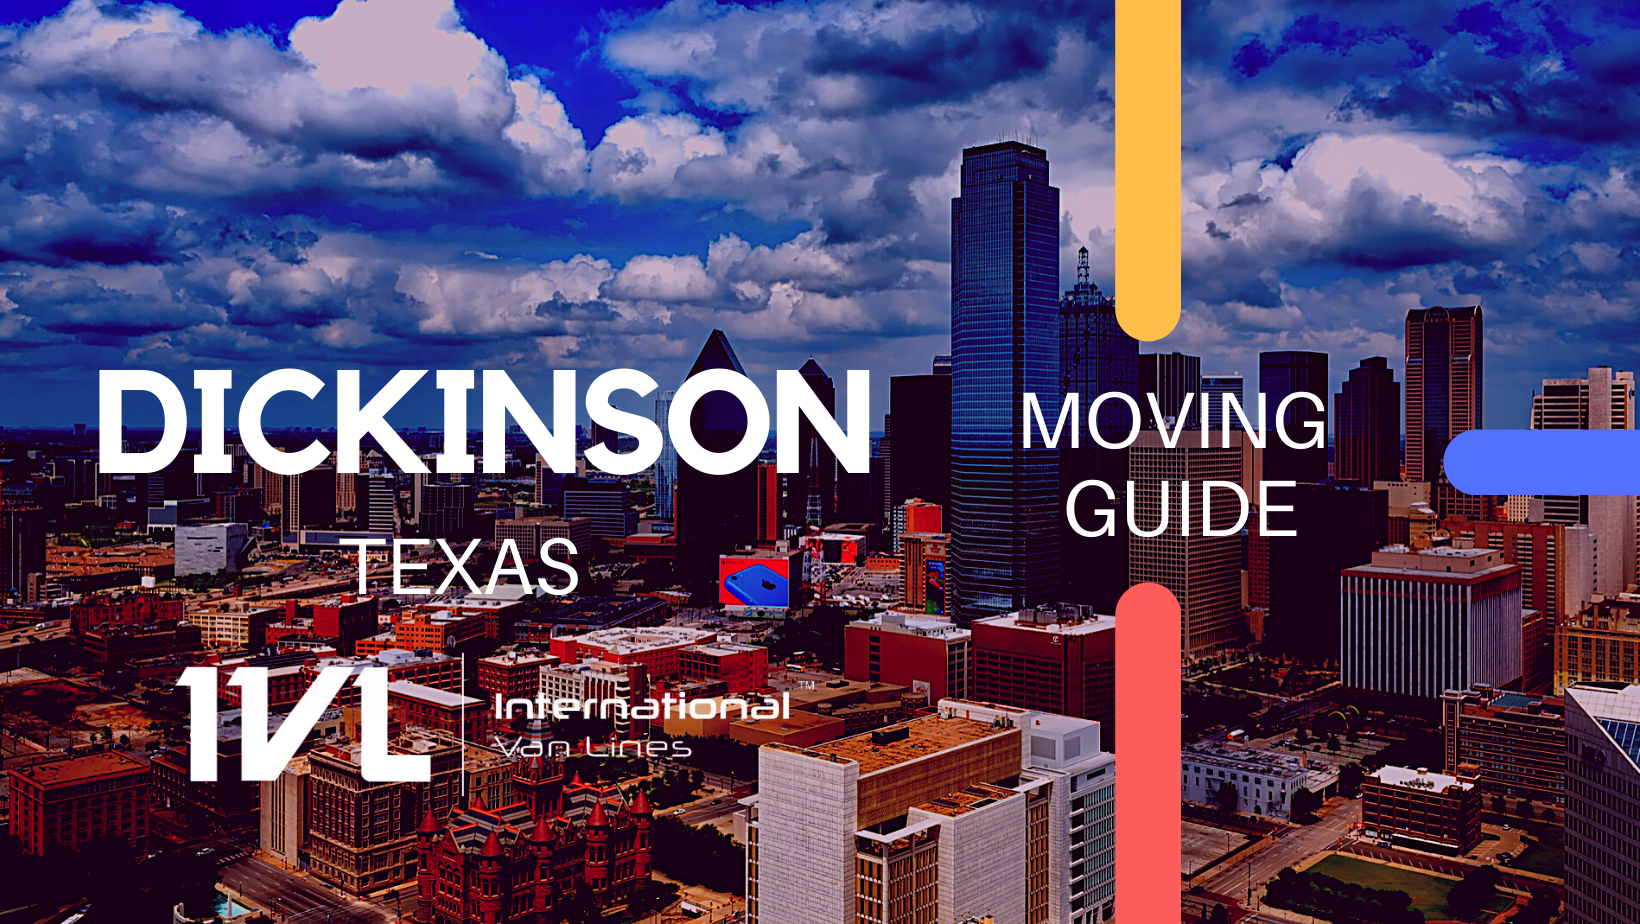 Dickinson Texas Moving Guide